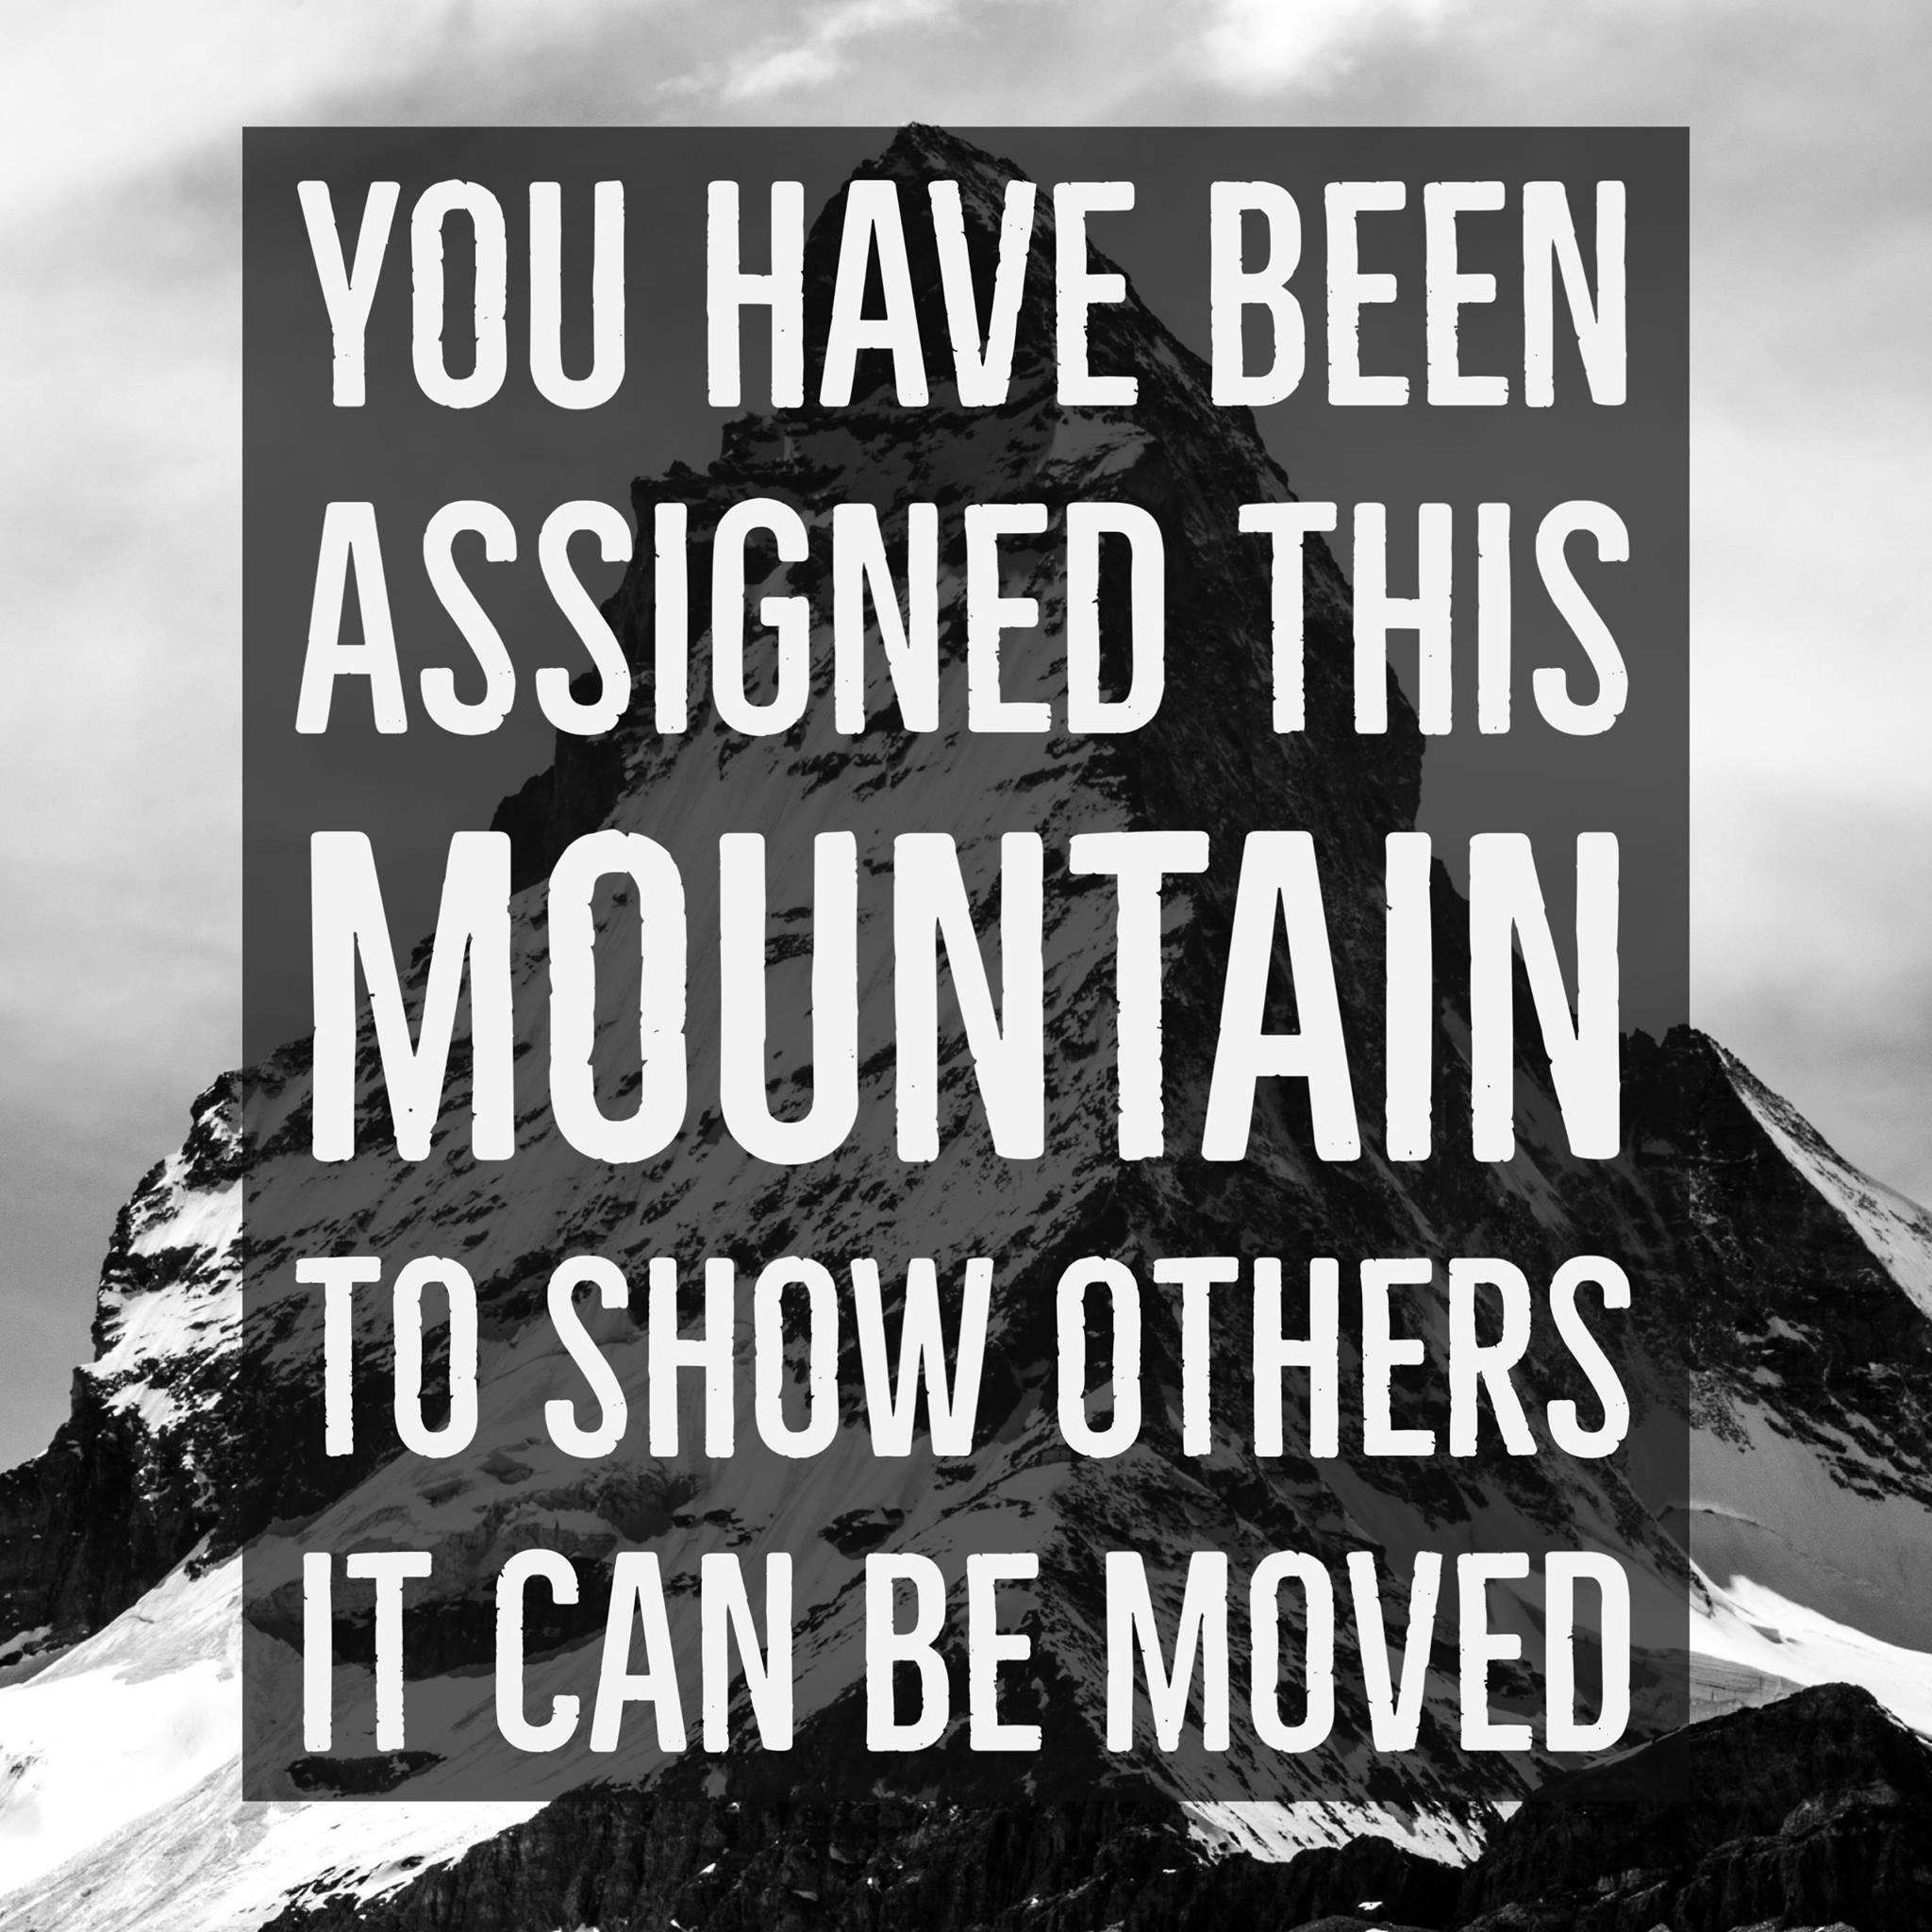 [Image] You have been assigned this mountain to show others it can be moved.